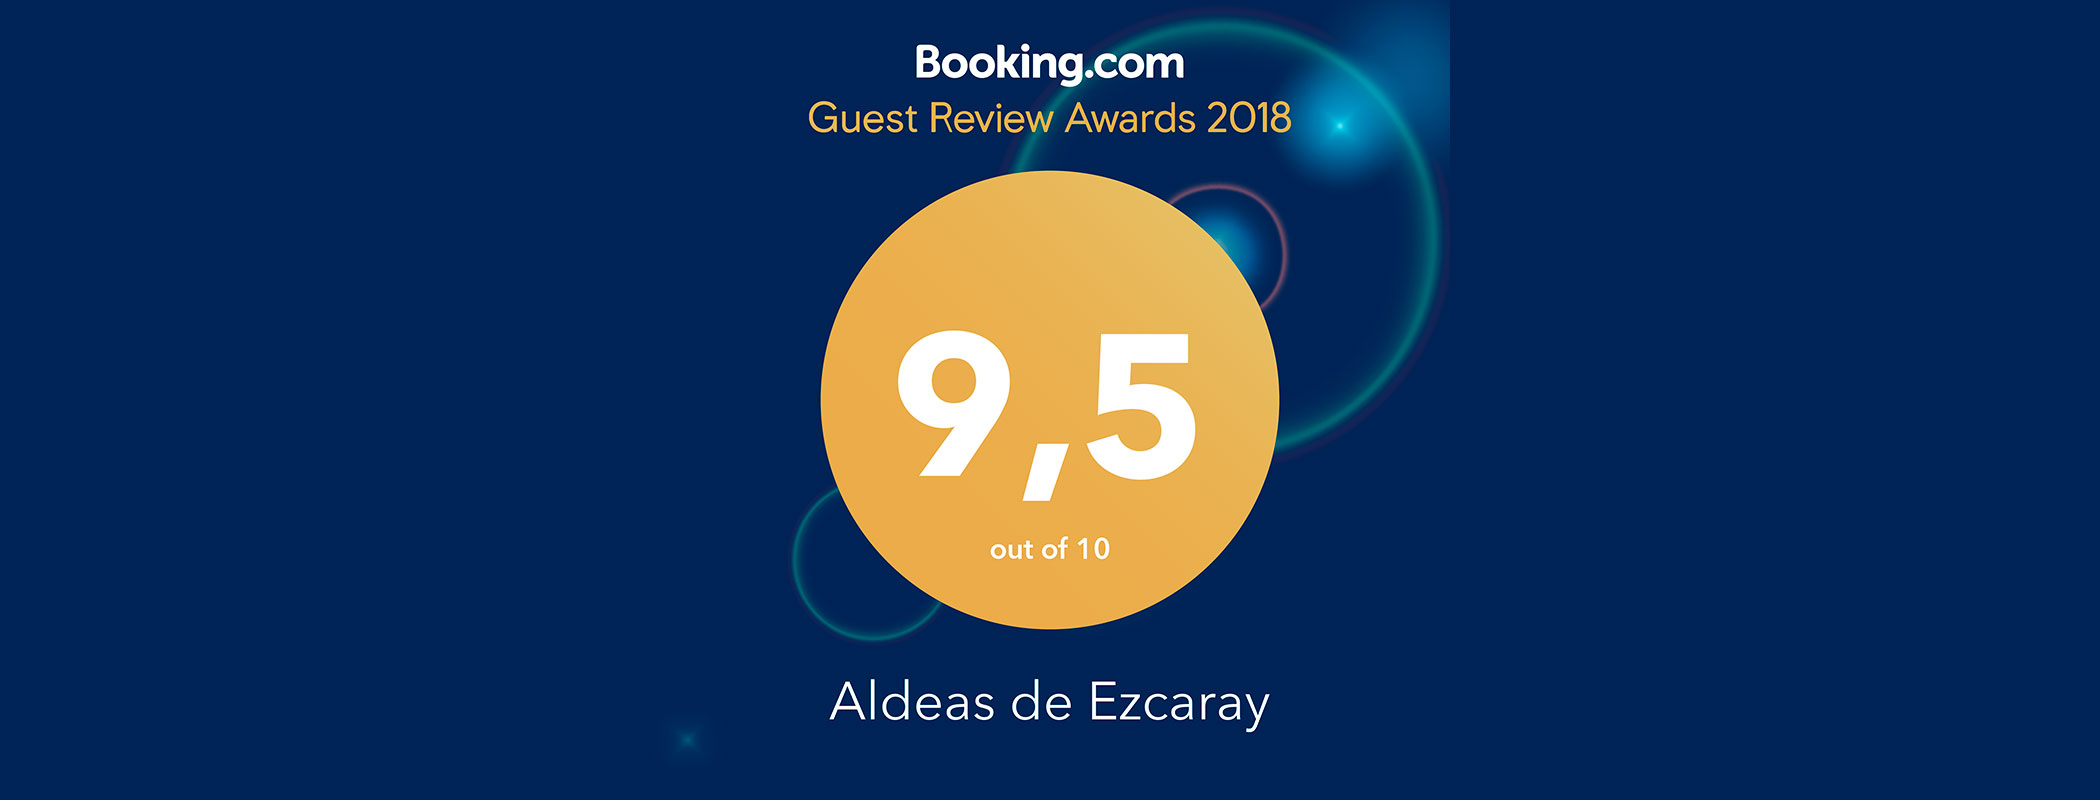 award_2018_booking